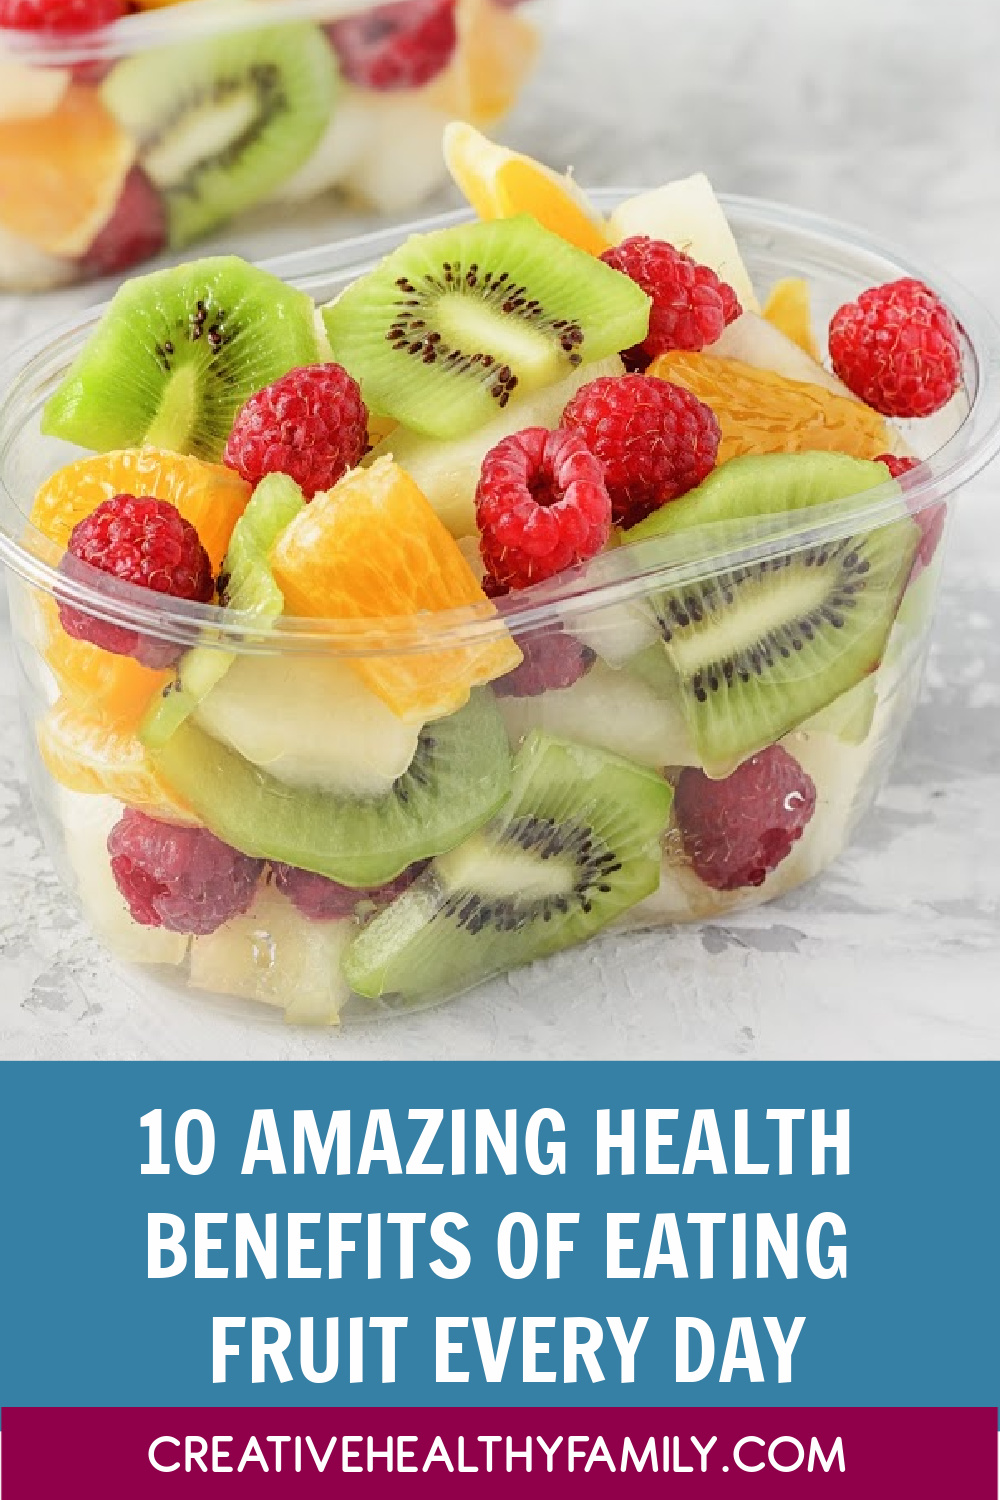 These top 10 reasons why you need to eat fruit will have you running to the supermarket to stock up asap! The health benefits are amazing. Take a look!